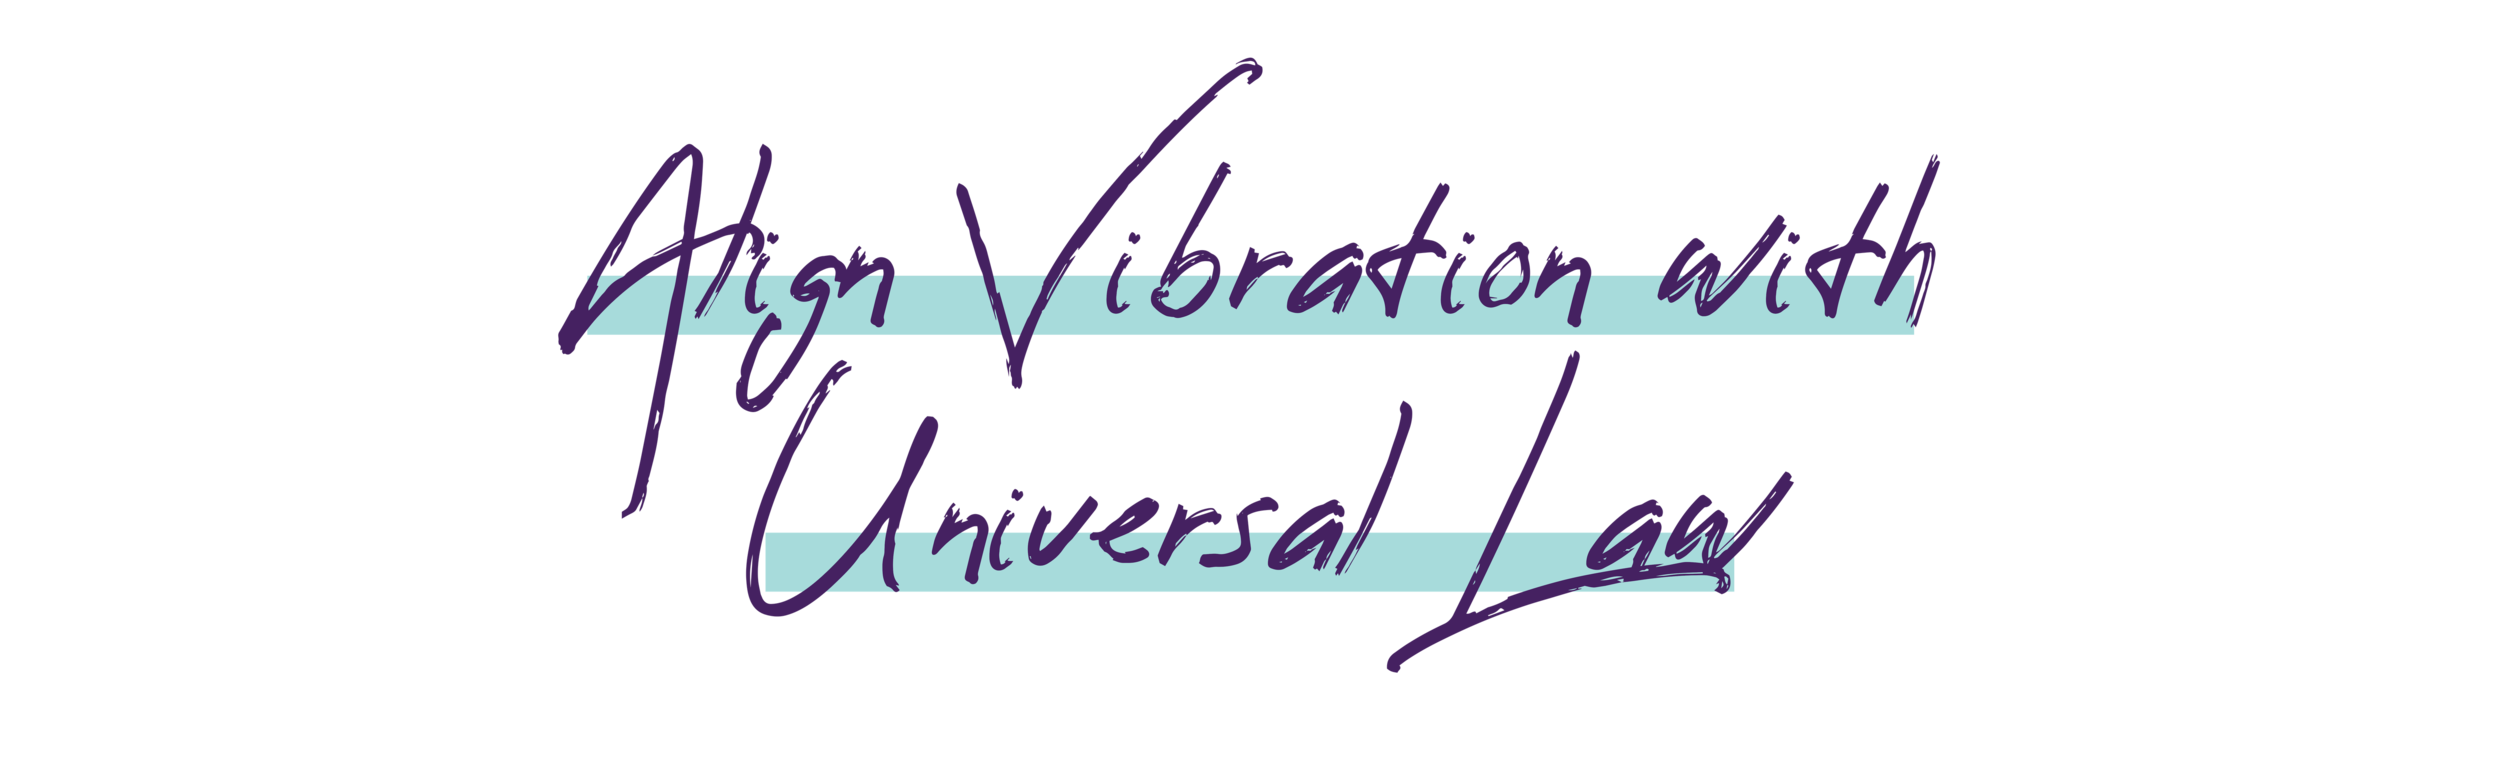 Align VIBRATION with Universal Law.png